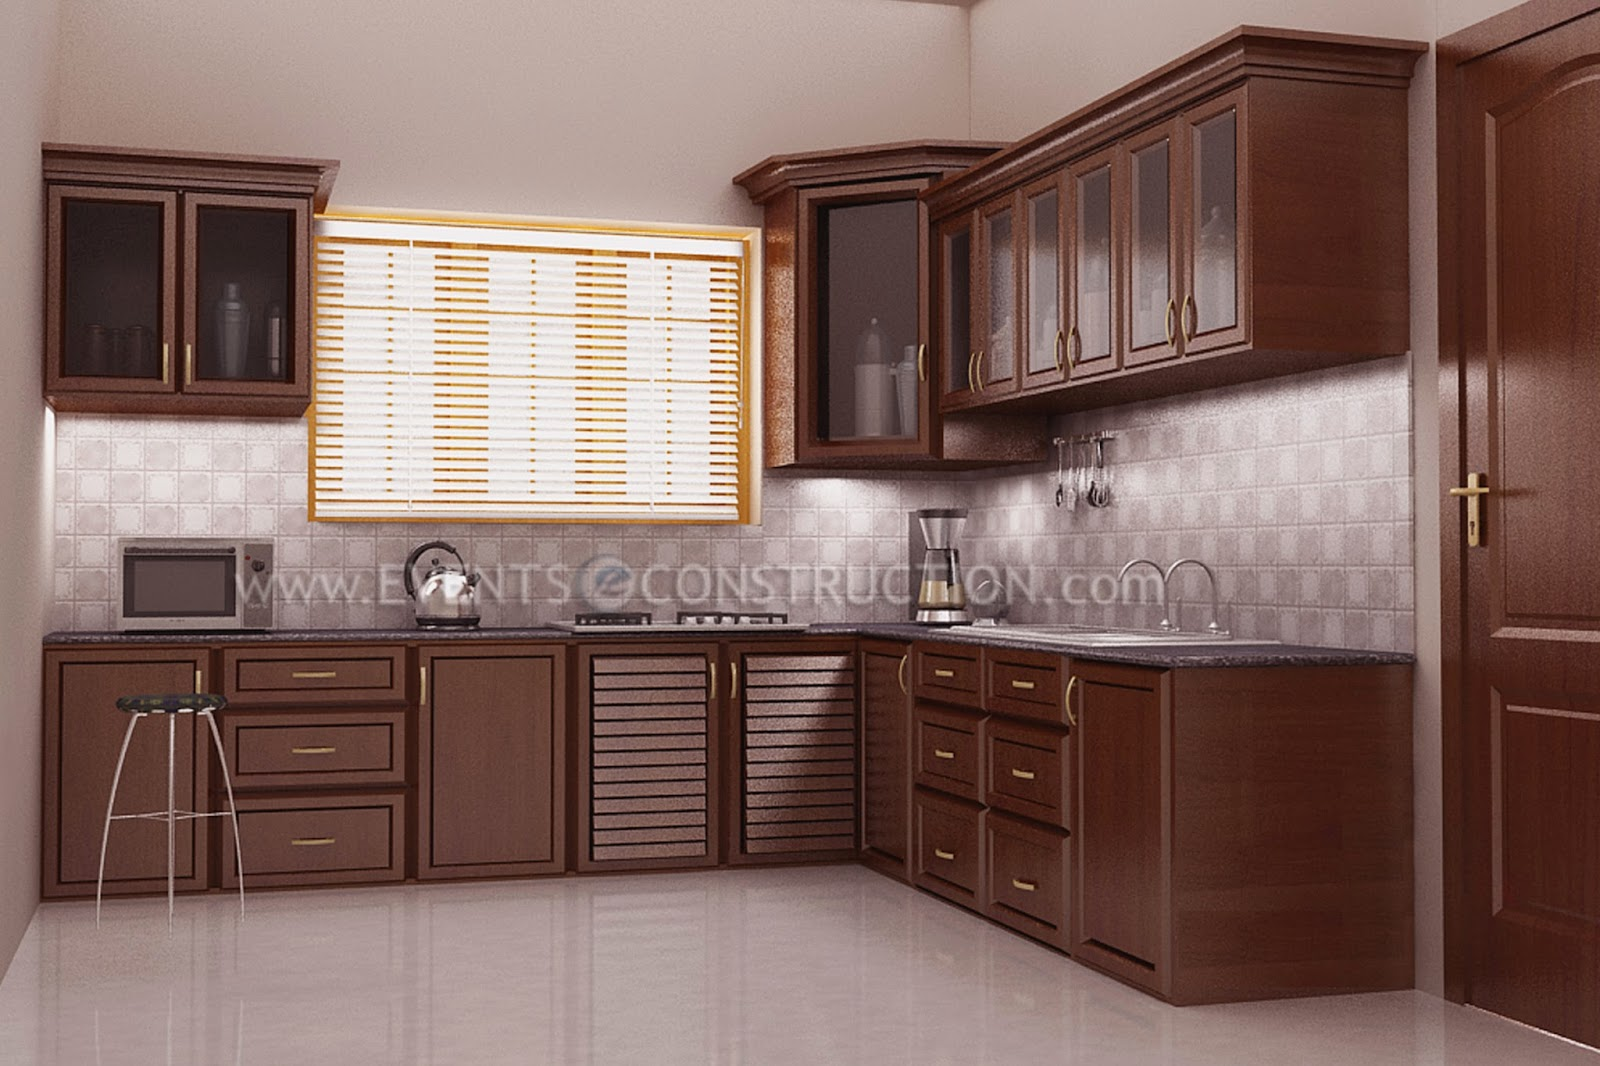 Evens construction pvt ltd kitchen design with wooden for Model home kitchen images